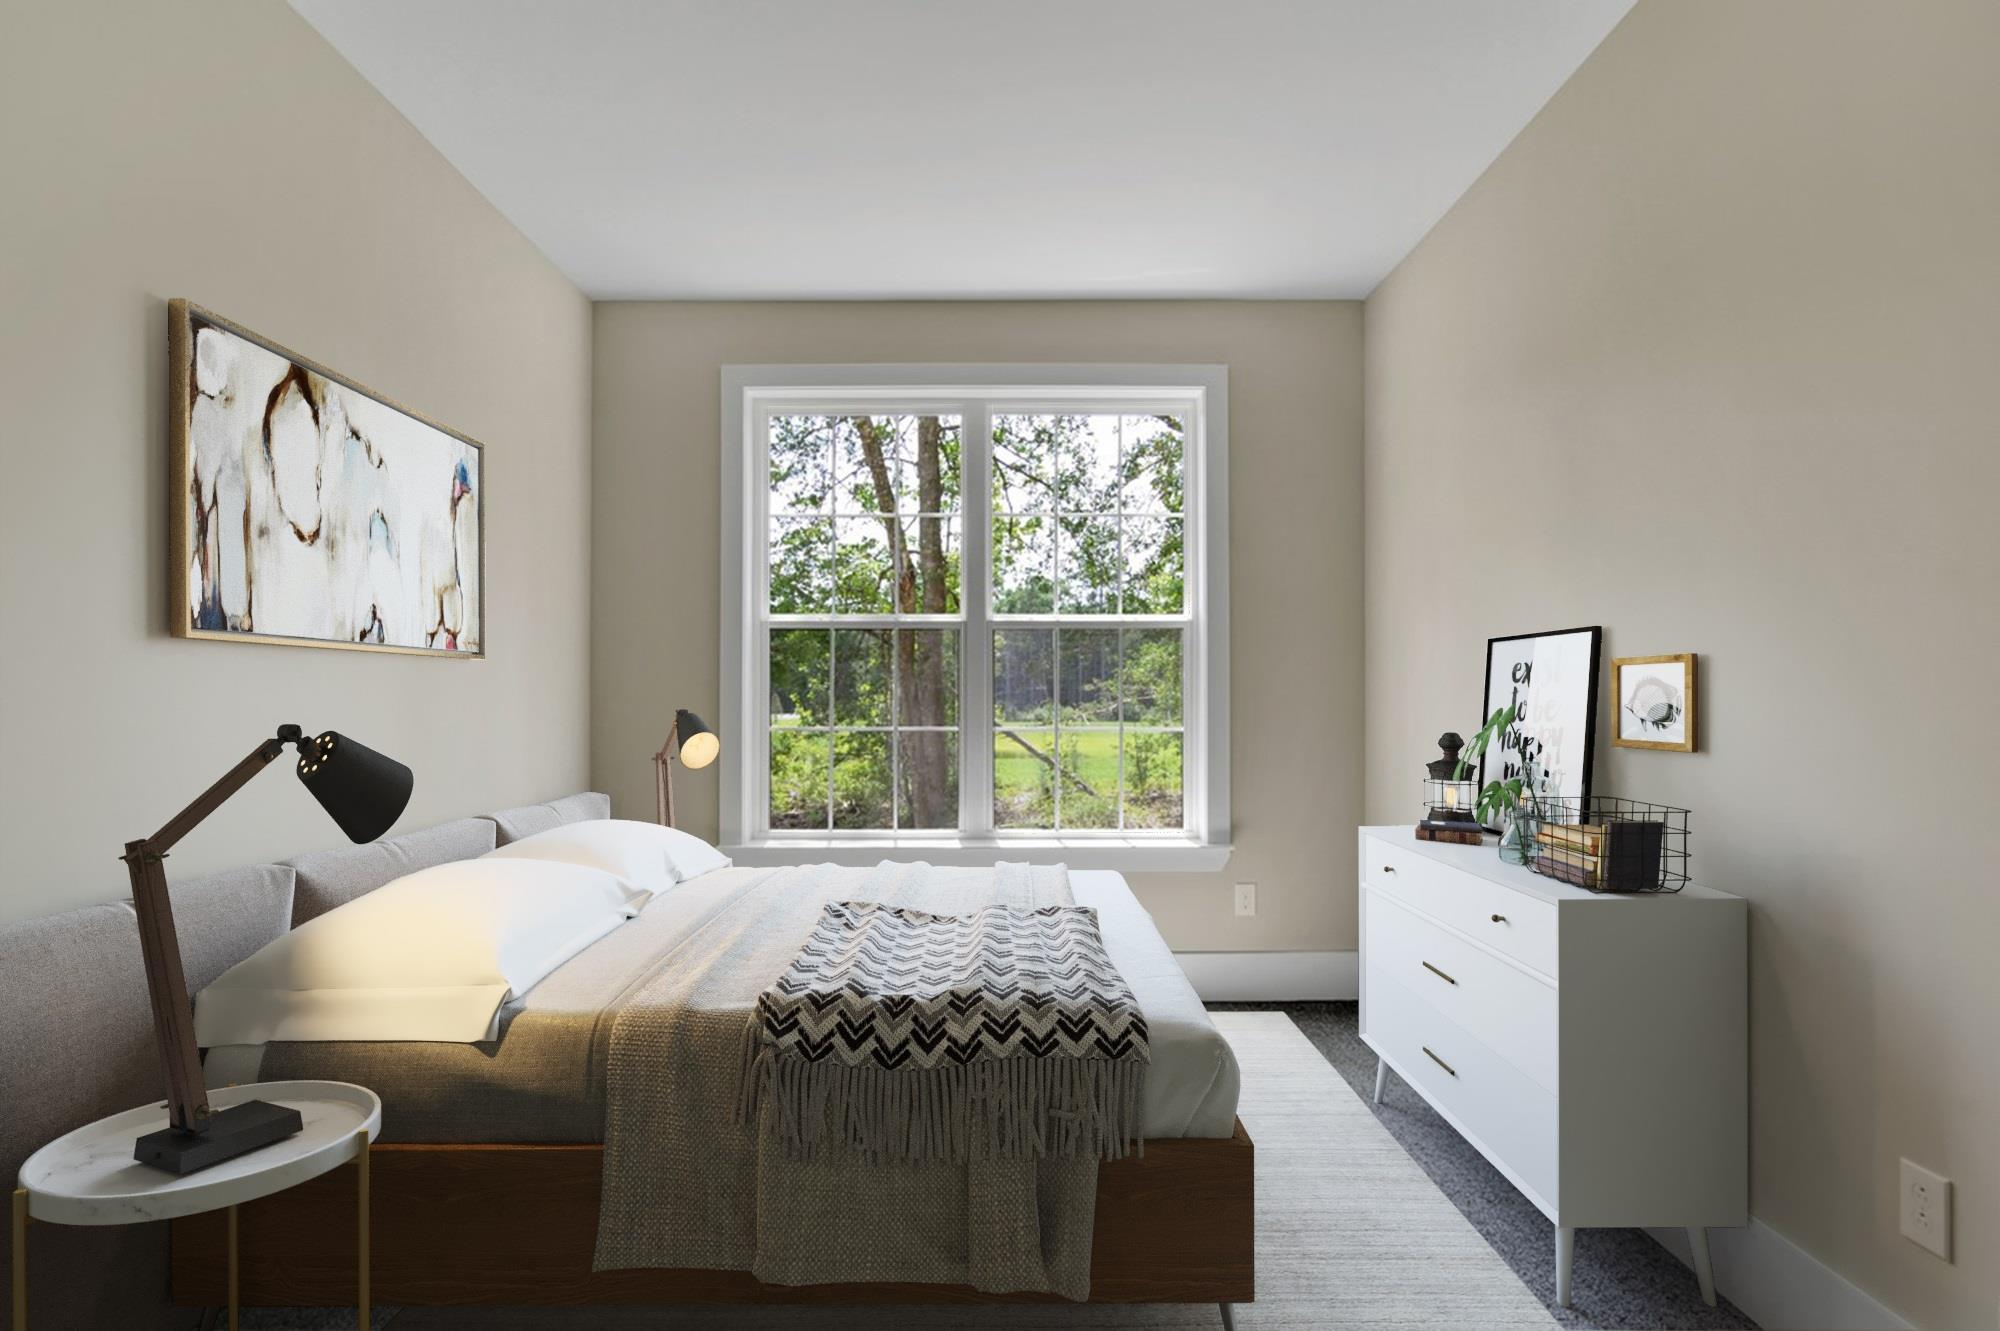 Bedroom featured in The Ocean View By Ashburn Homes in Sussex, DE